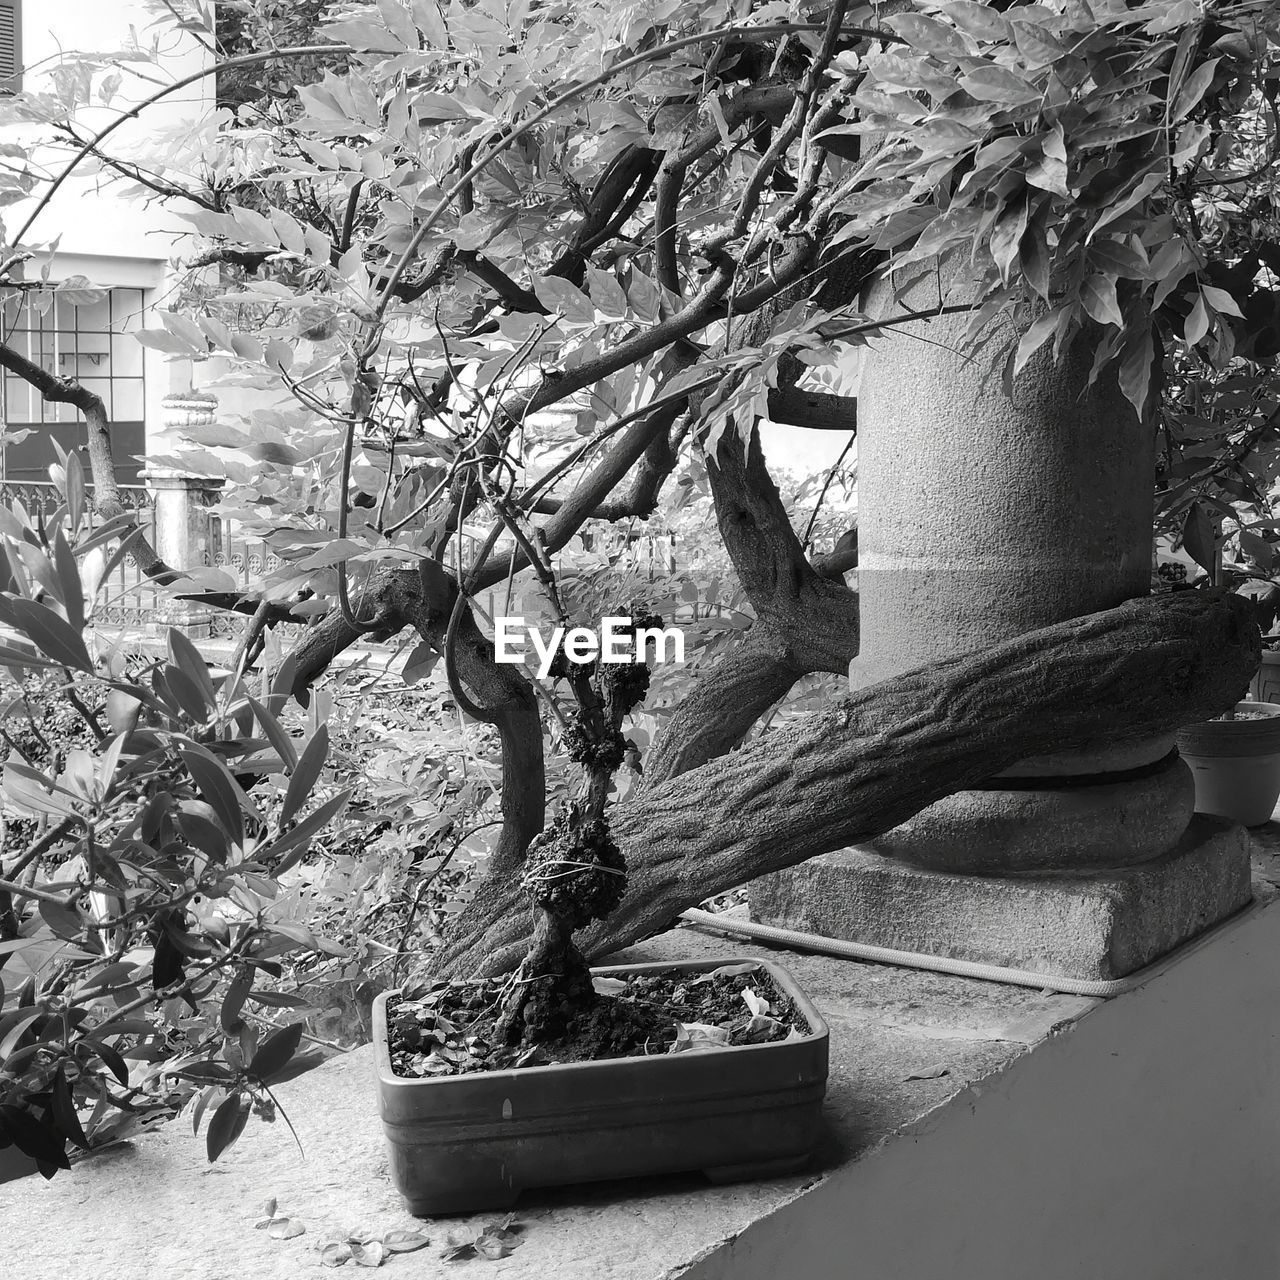 plant, growth, no people, nature, tree, day, potted plant, built structure, architecture, outdoors, close-up, beauty in nature, flowering plant, flower, plant part, bonsai tree, branch, fragility, wall - building feature, building exterior